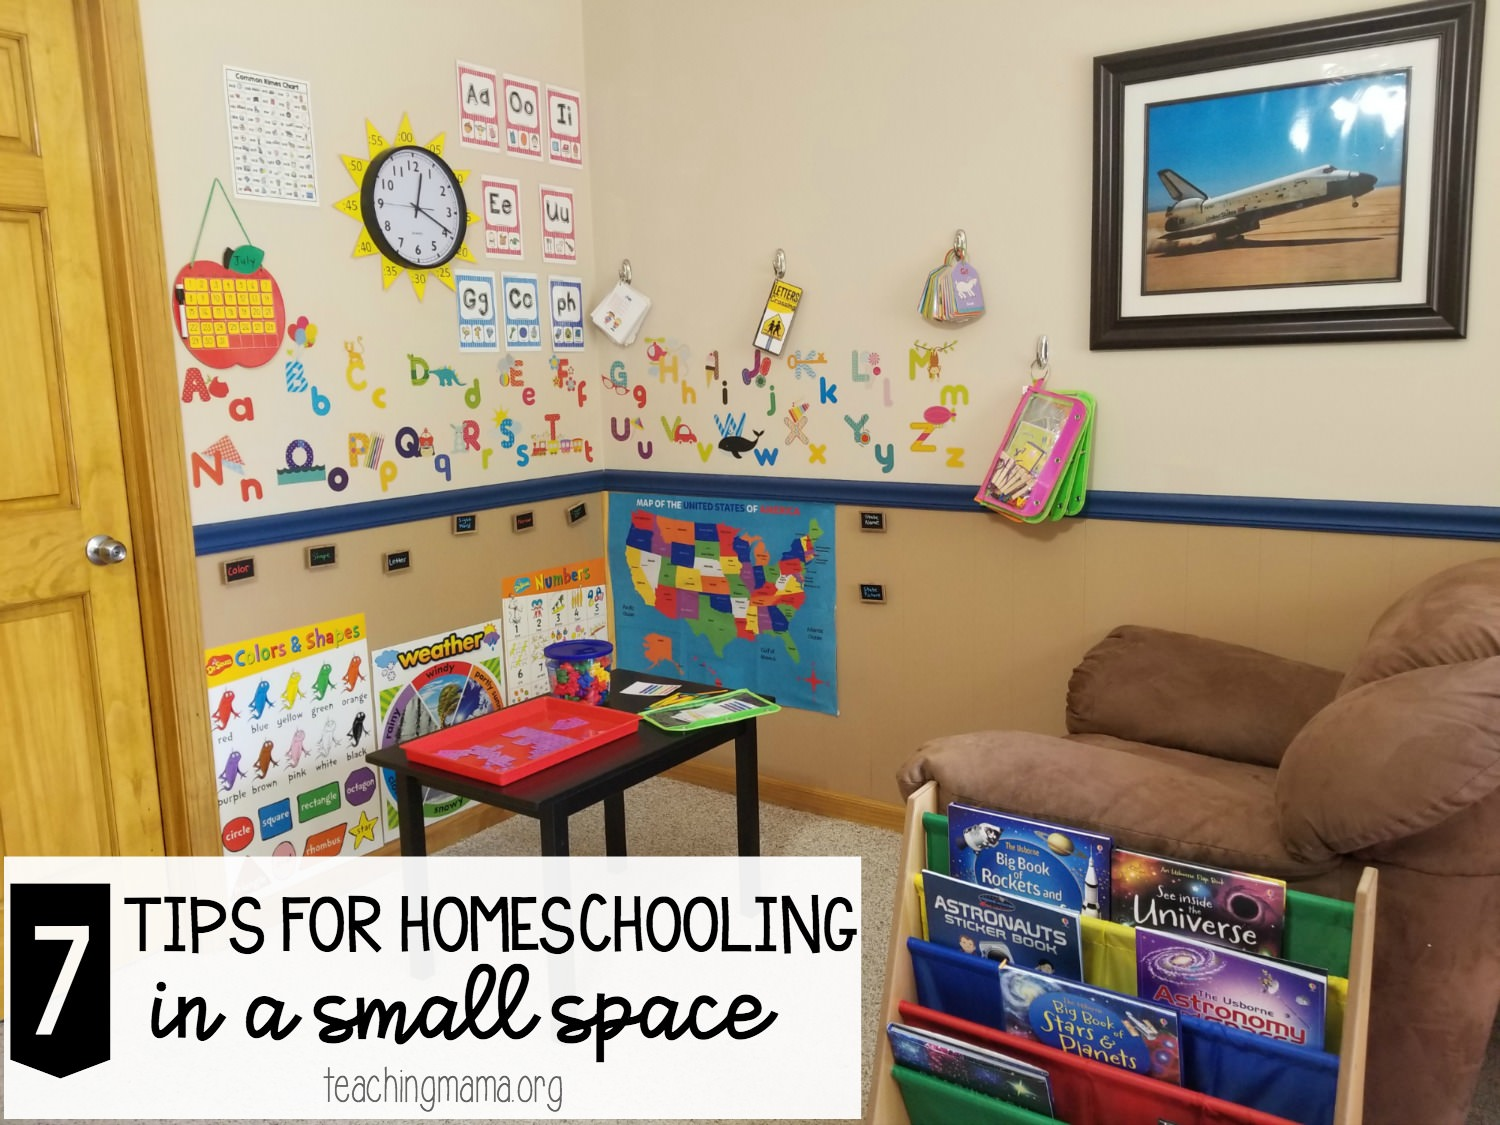 7 tips for homeschooling in a small space